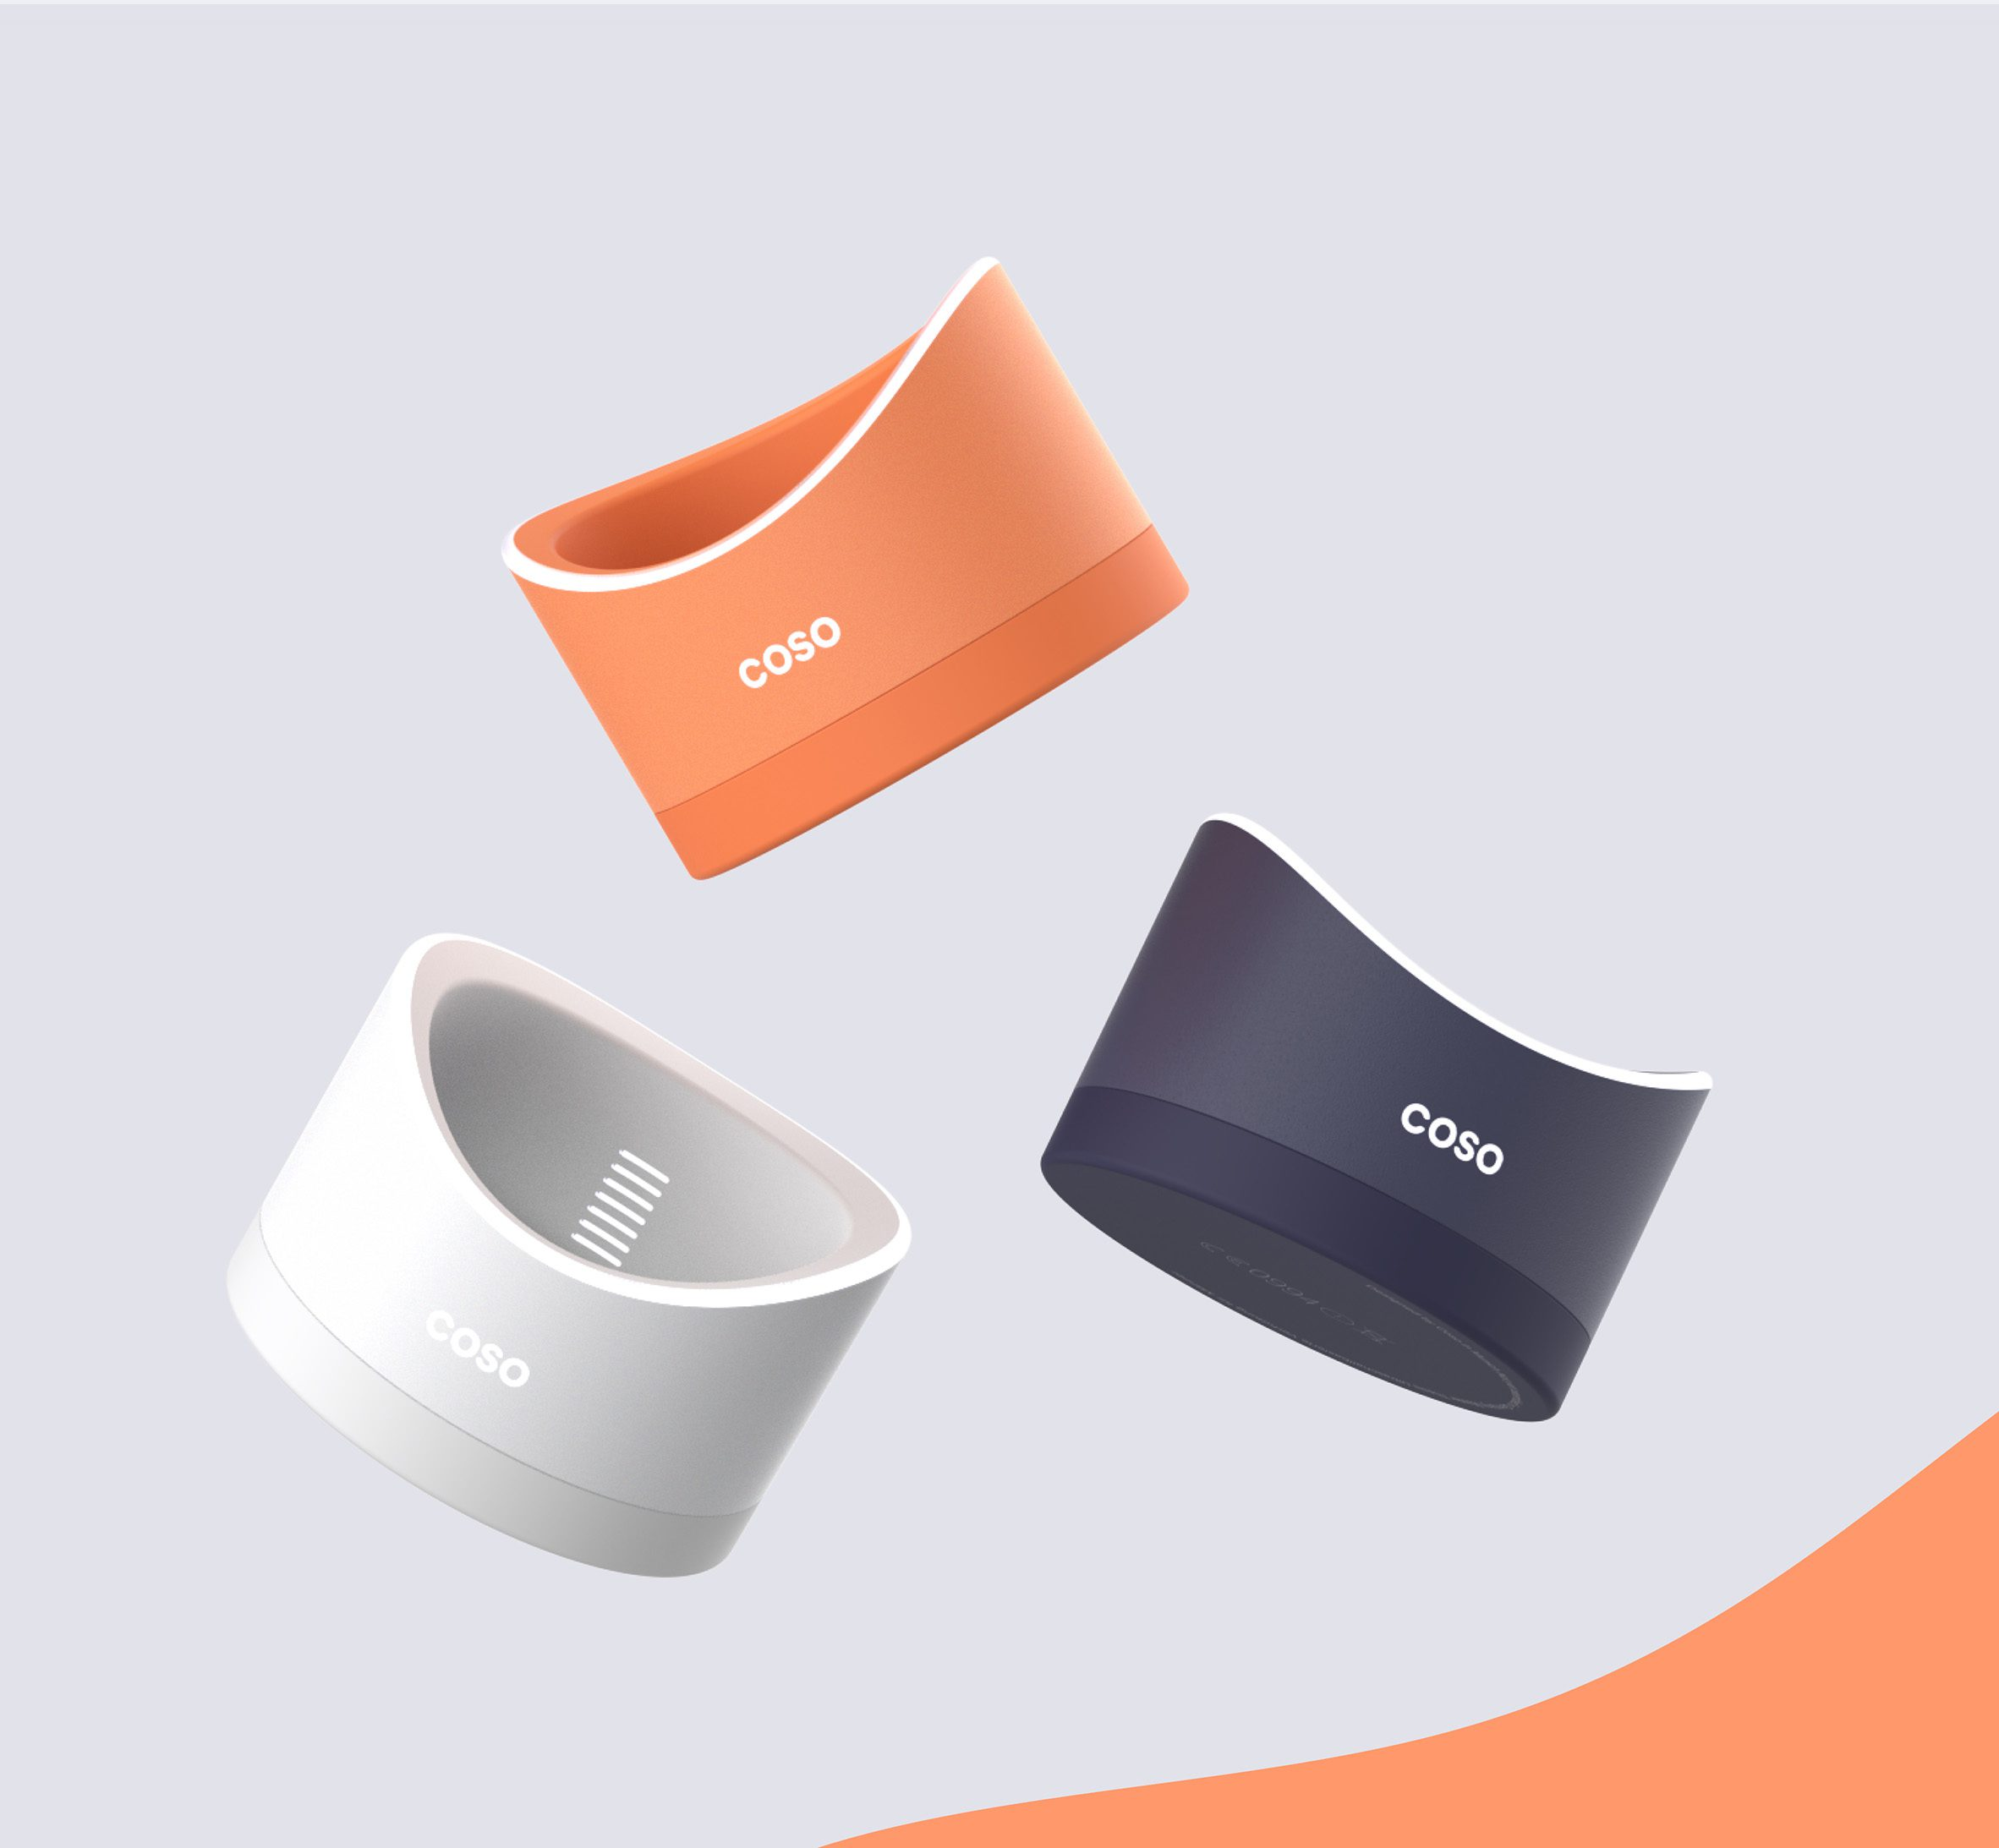 Coso contraceptive device rendered in shades of dark blue-grey, bright coral and white